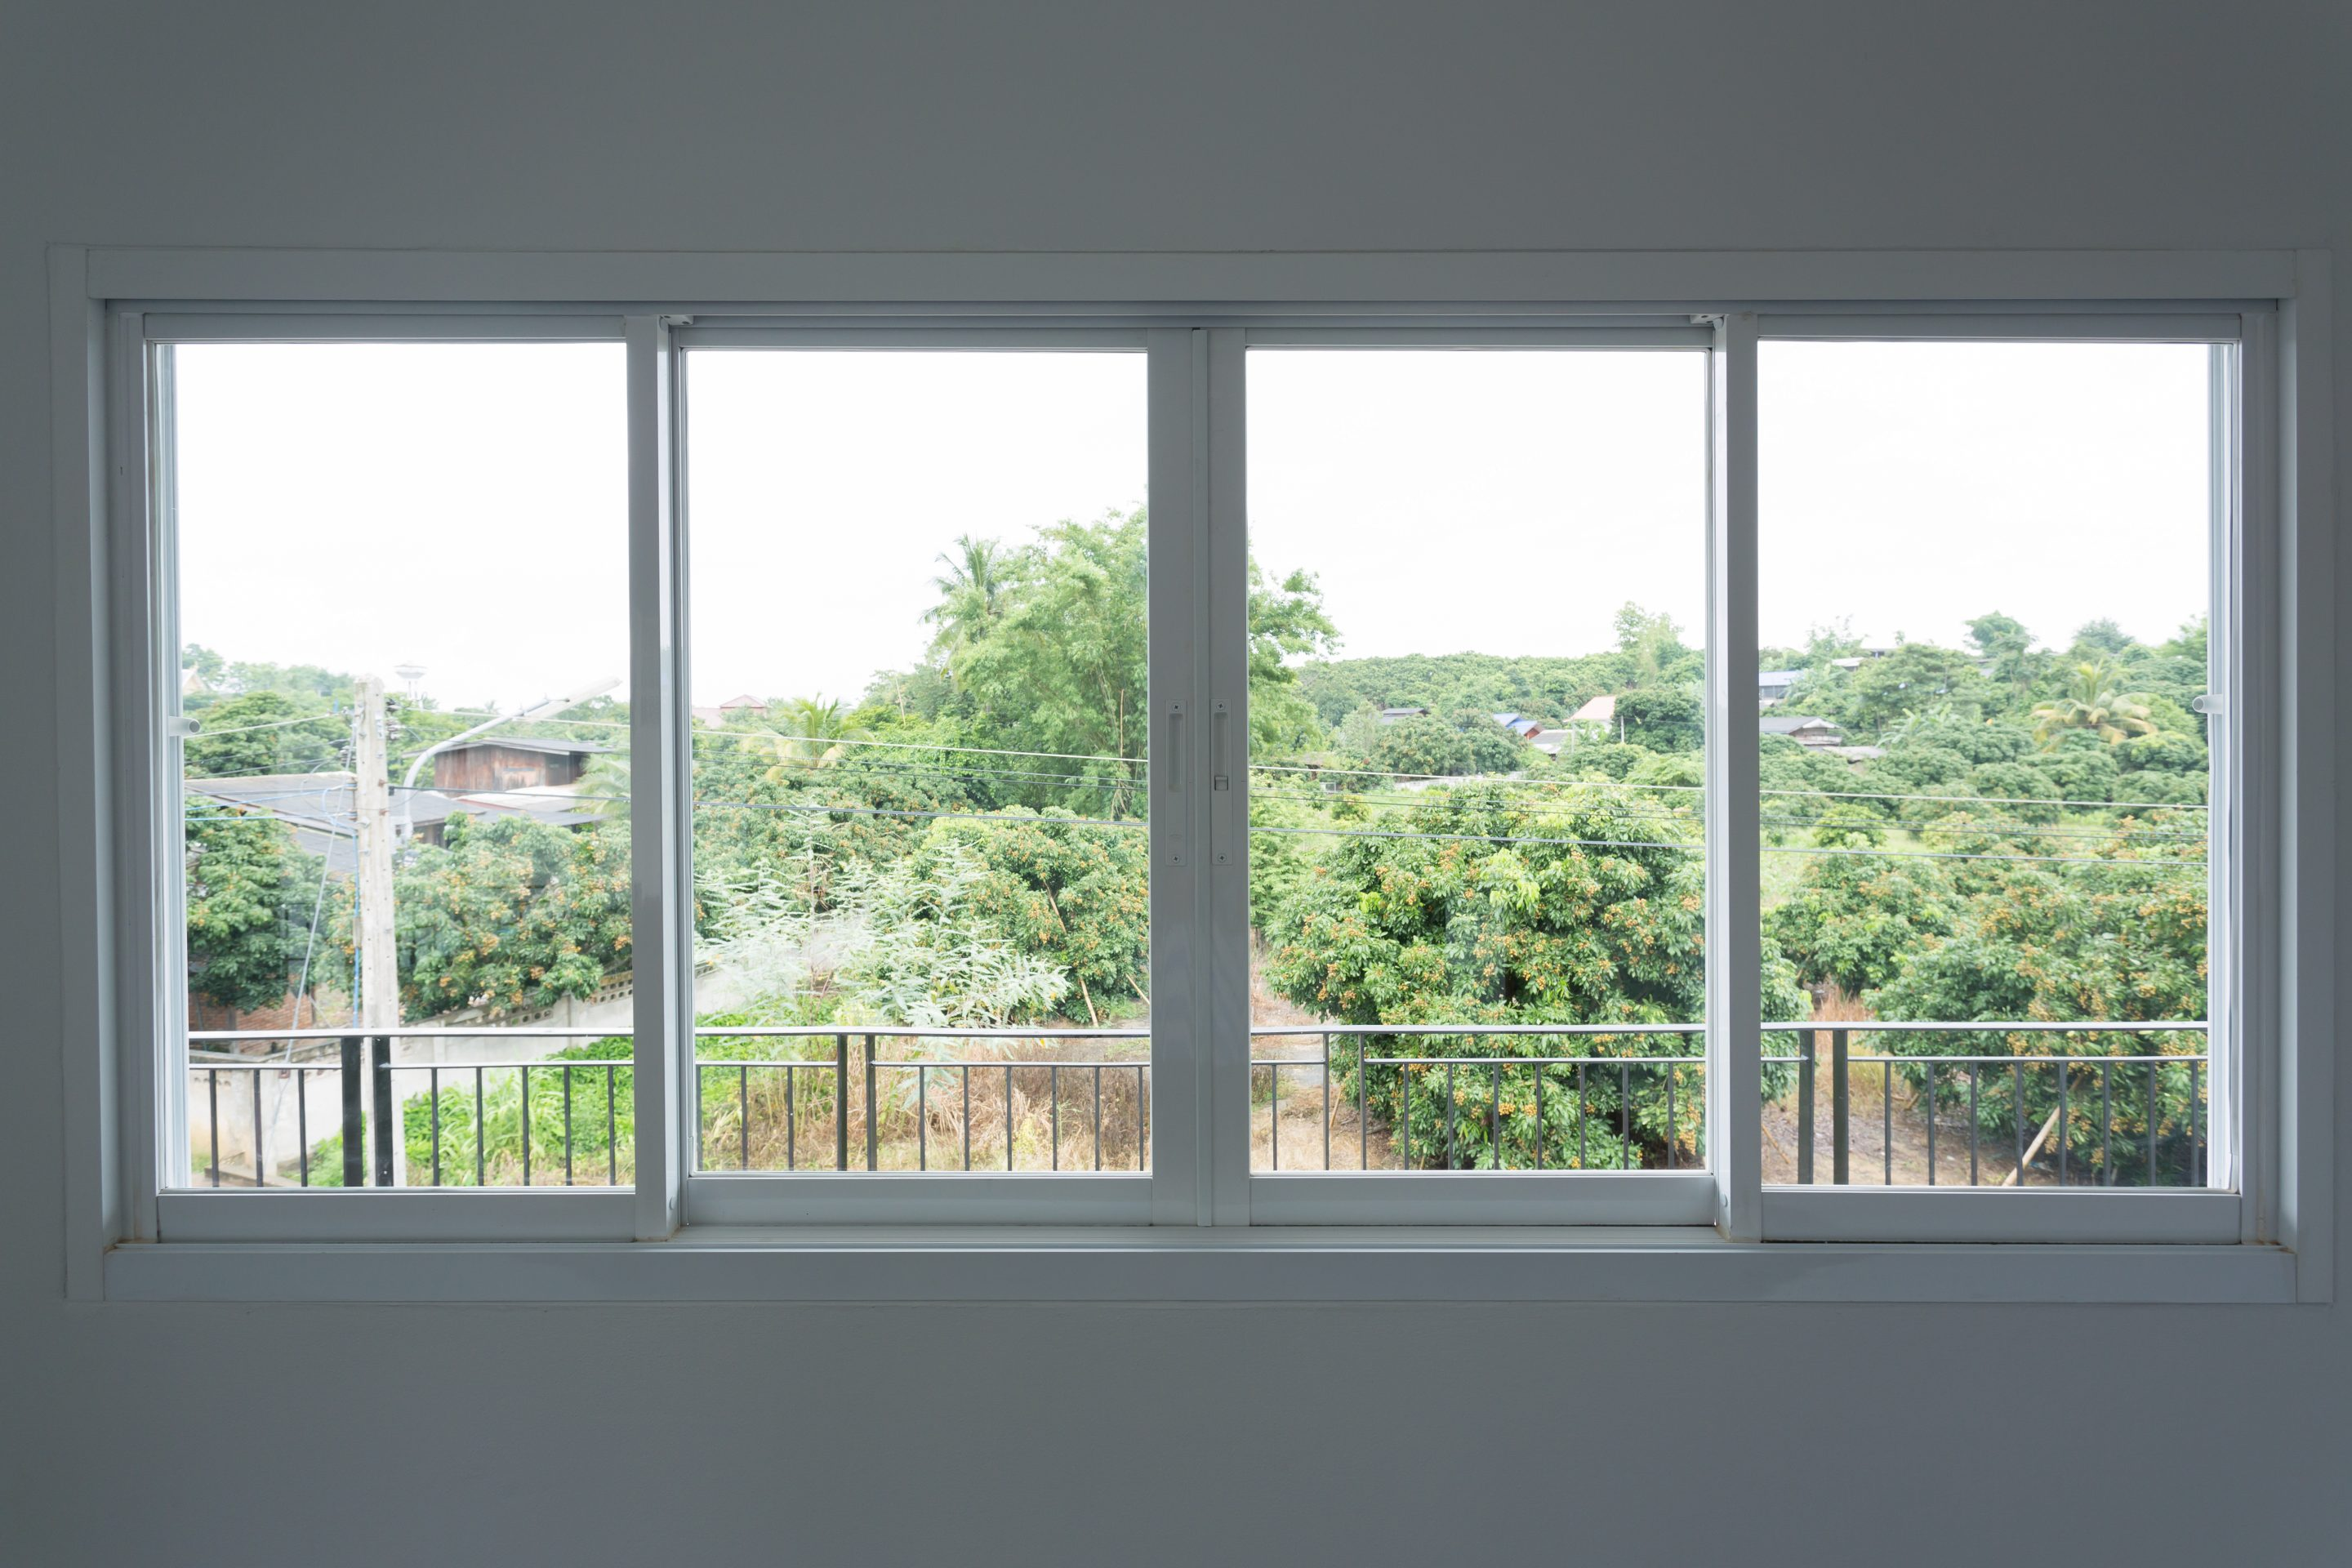 sliding windows,Wood window, fiberglass window, bay window, bow window,